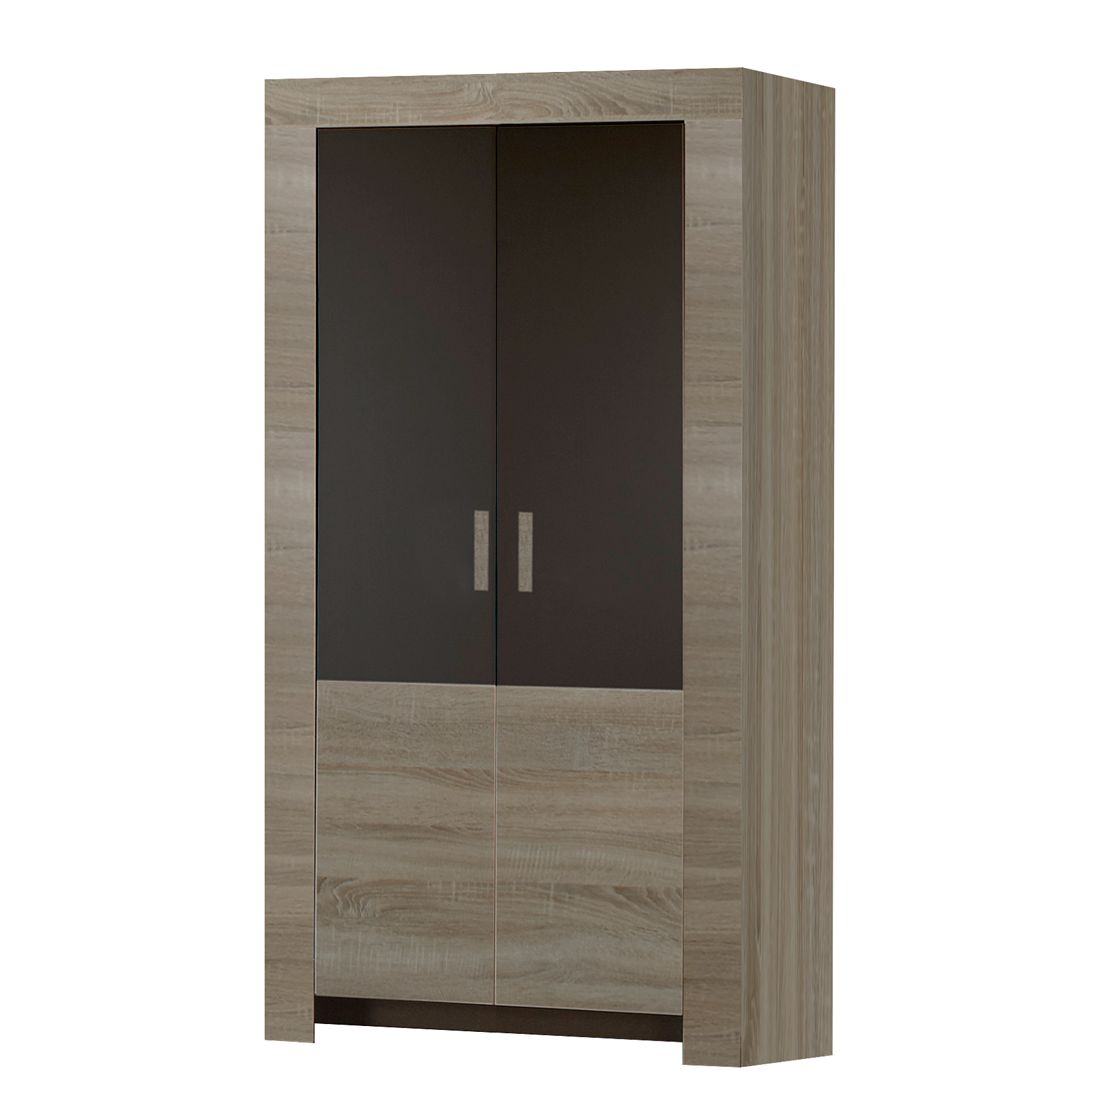 kleiderschrank emma eiche grau 2 t rig schrank. Black Bedroom Furniture Sets. Home Design Ideas